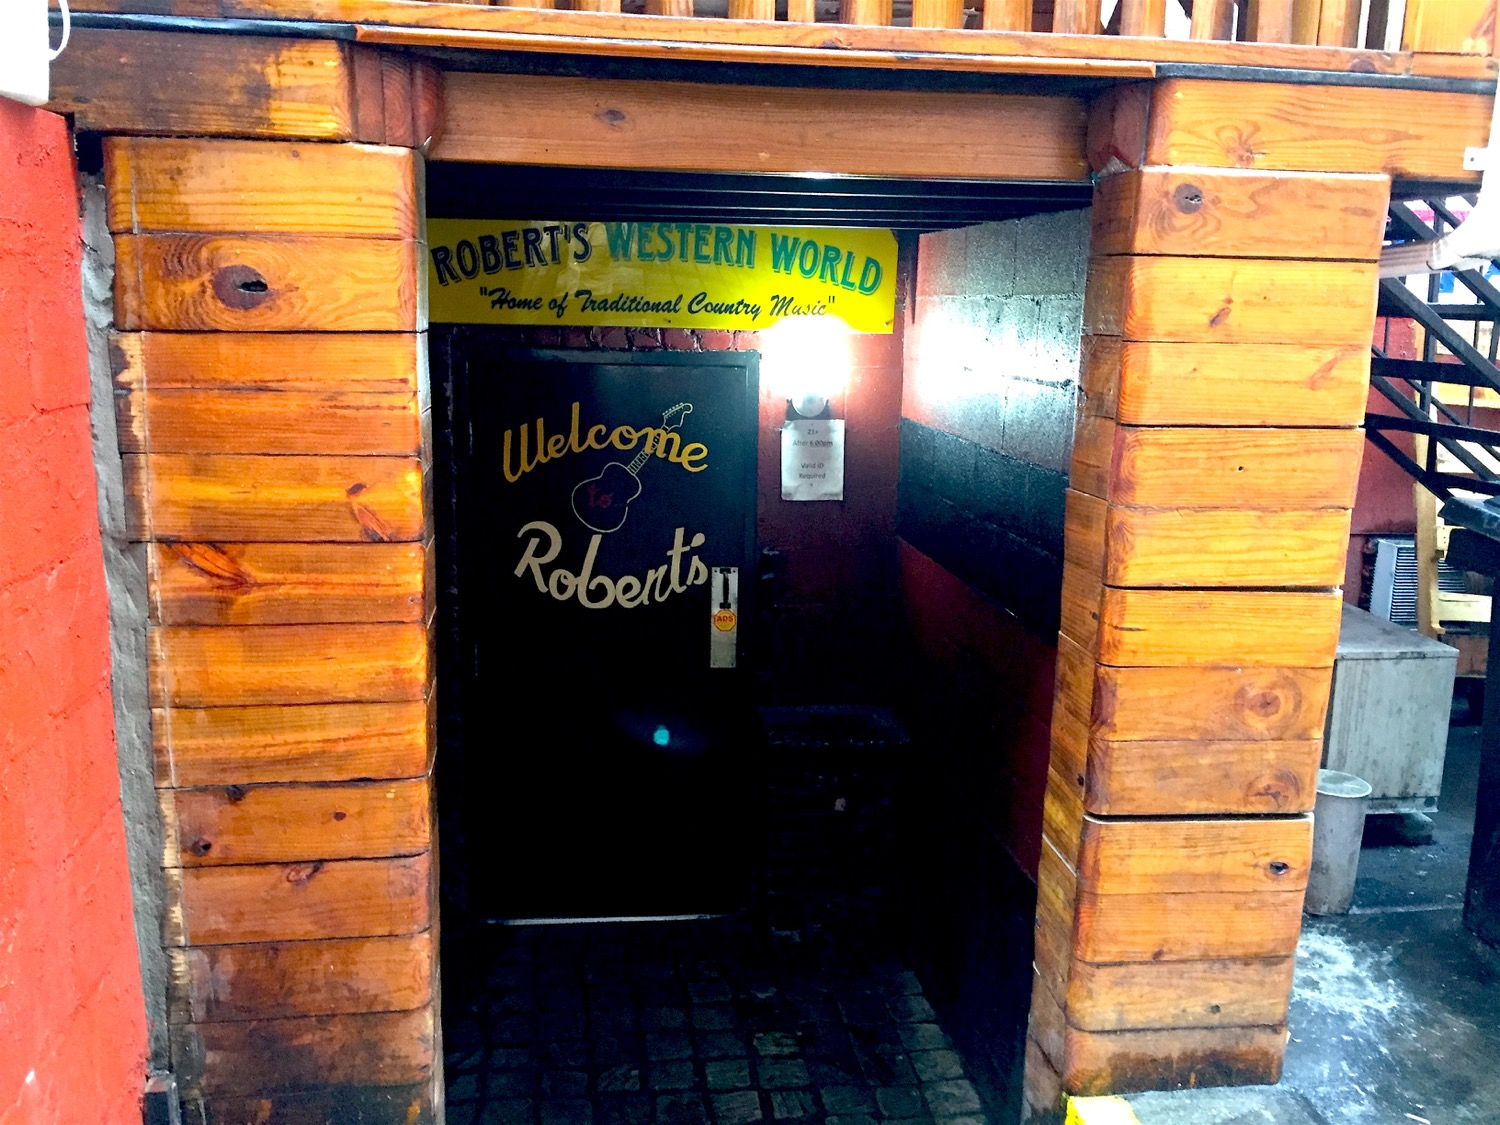 The back door to Robert's Western World is directly across from the stage door to the Ryman.